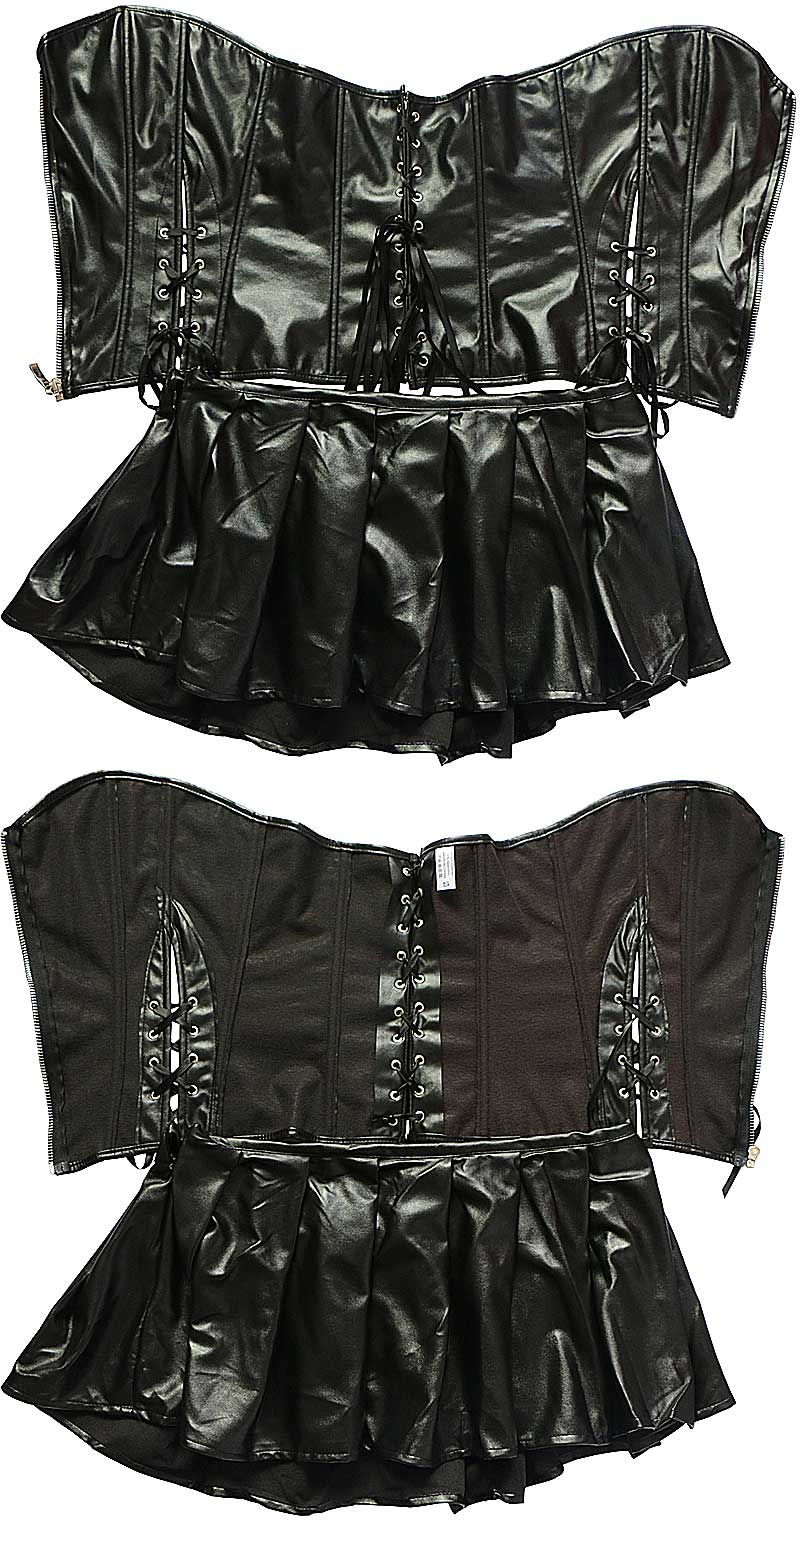 wholesale price fashion design sexy bustier front zipper leather corselect dress corset with min skirt plus size s-6xl Dresses 9